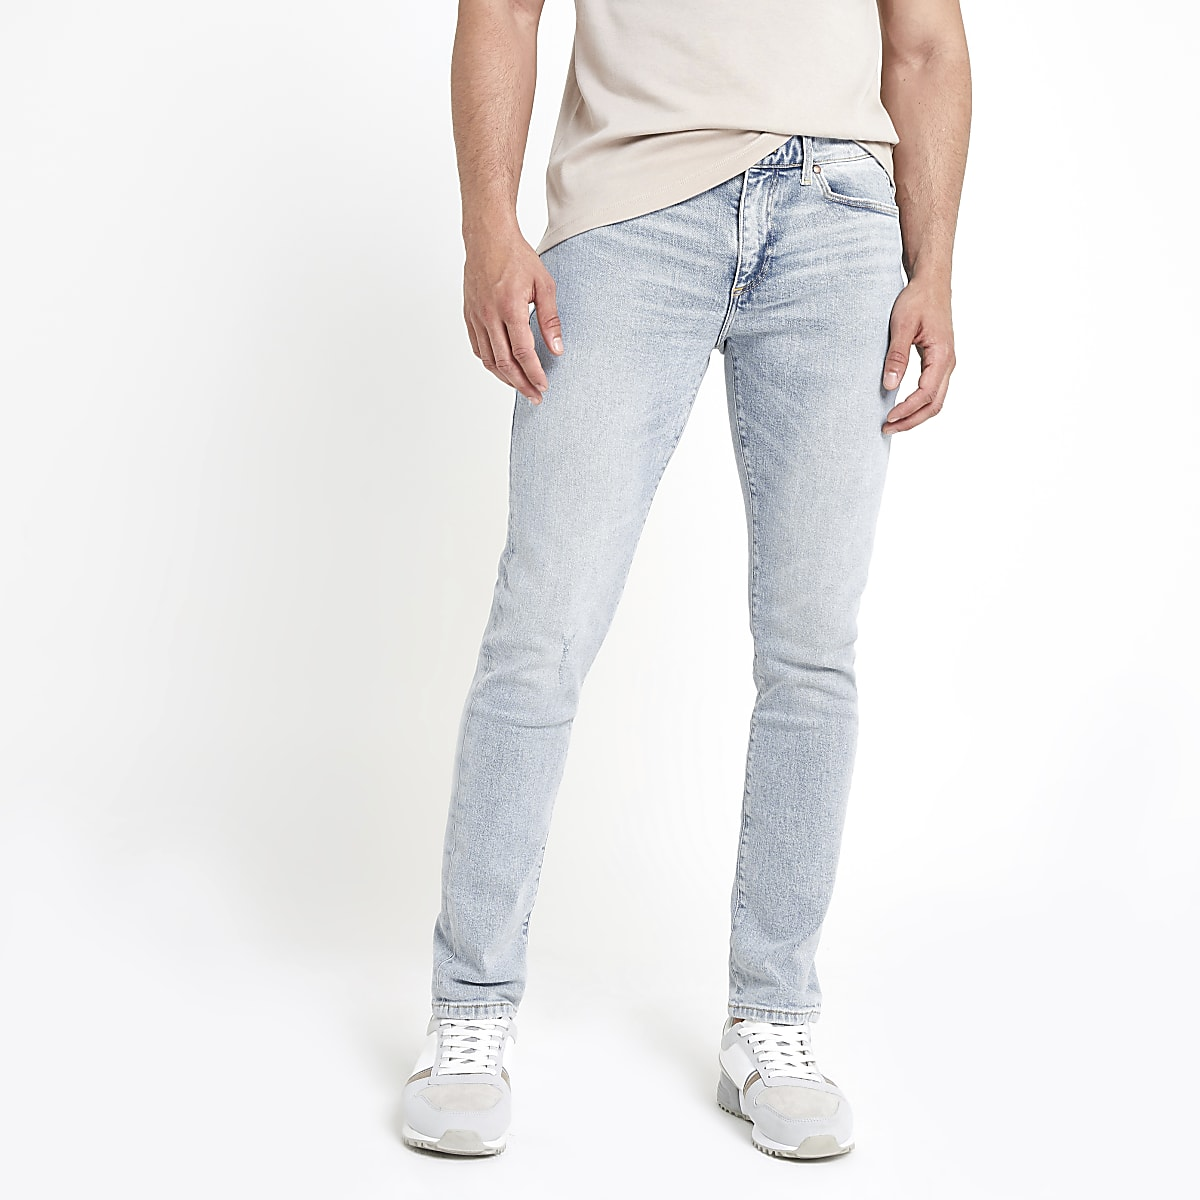 Lichtblauwe skinny-fit jeans